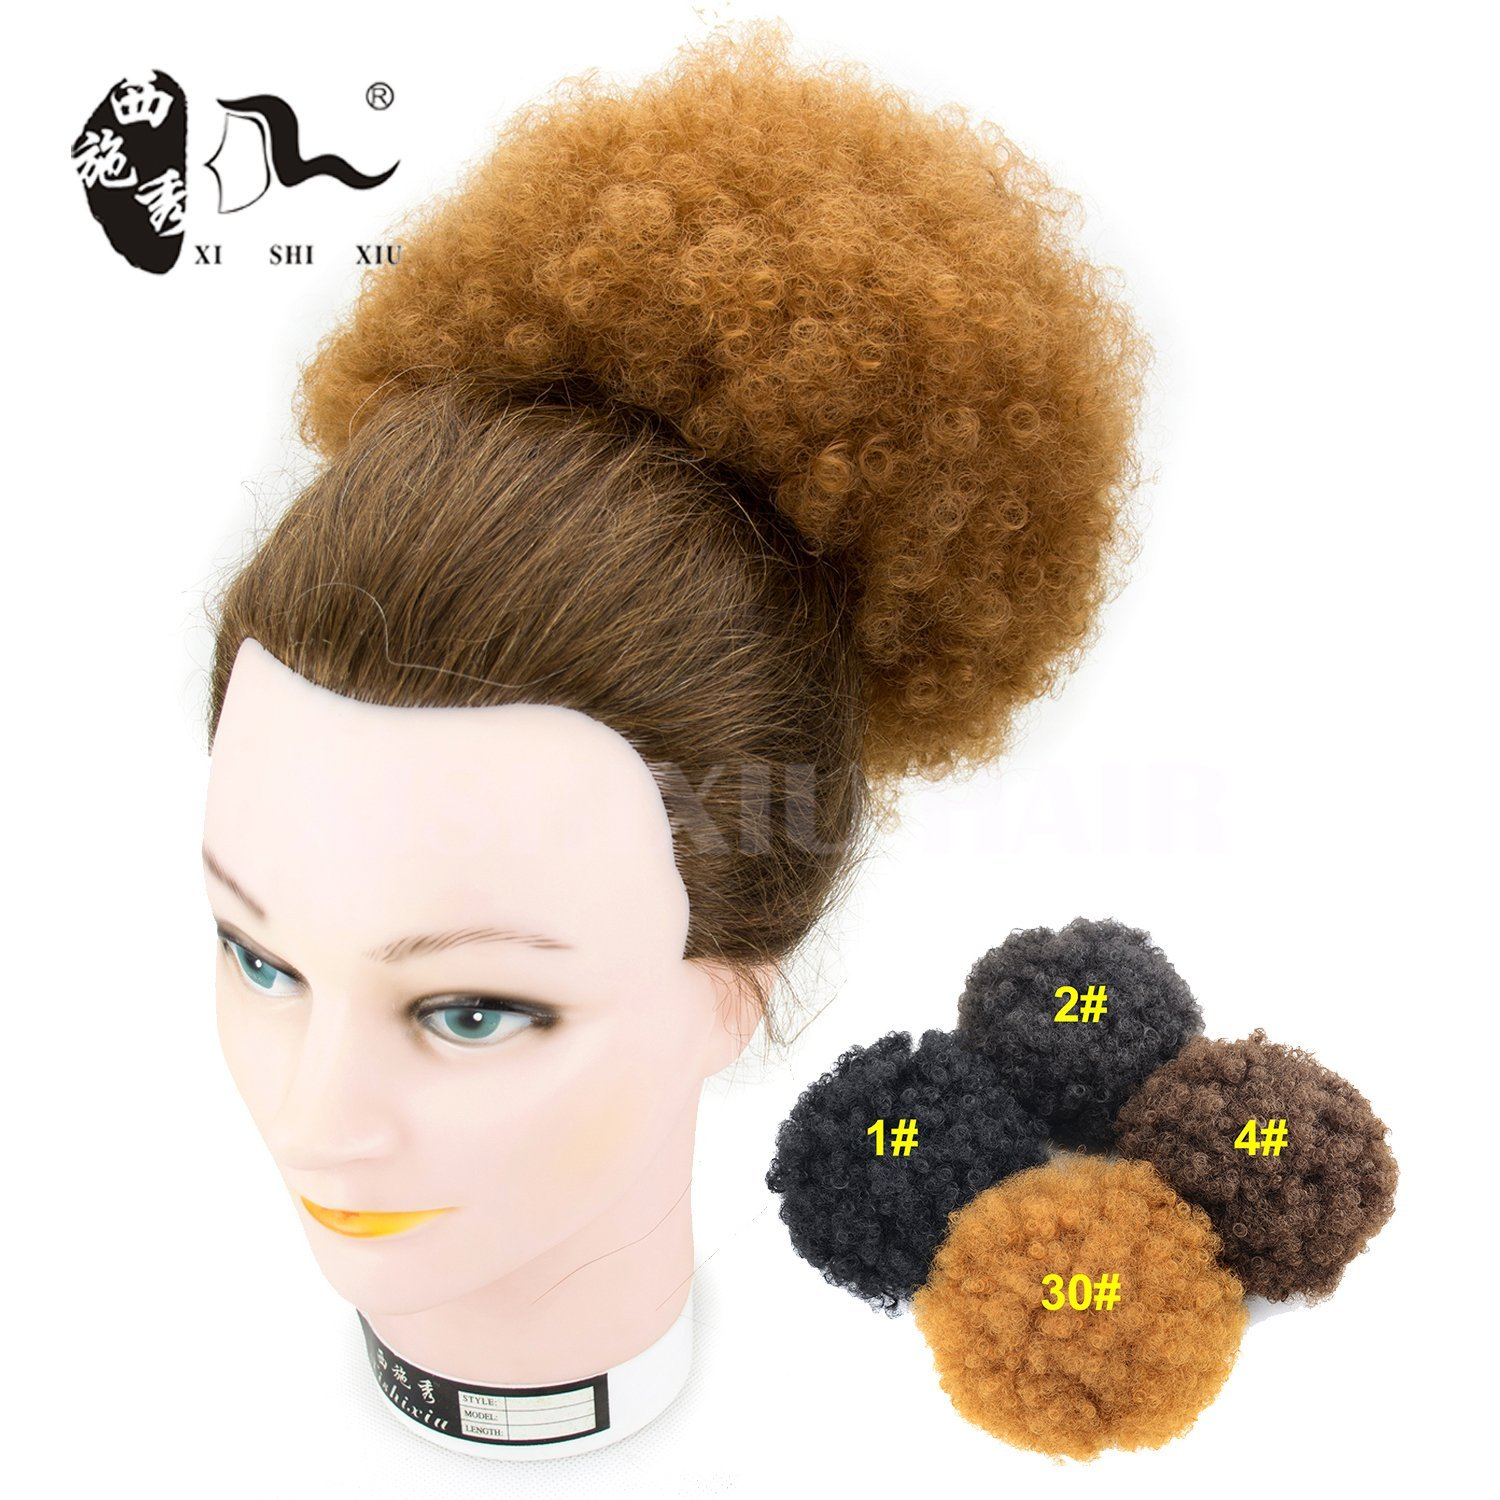 XI SHI XIU Big Curly Ponytail, Afro Pom Pom Hair Drawstring Ponytail Puff, African American Black Short Afro Kinky Curly Hair Extension, Synthetic Puff Hair (30#)